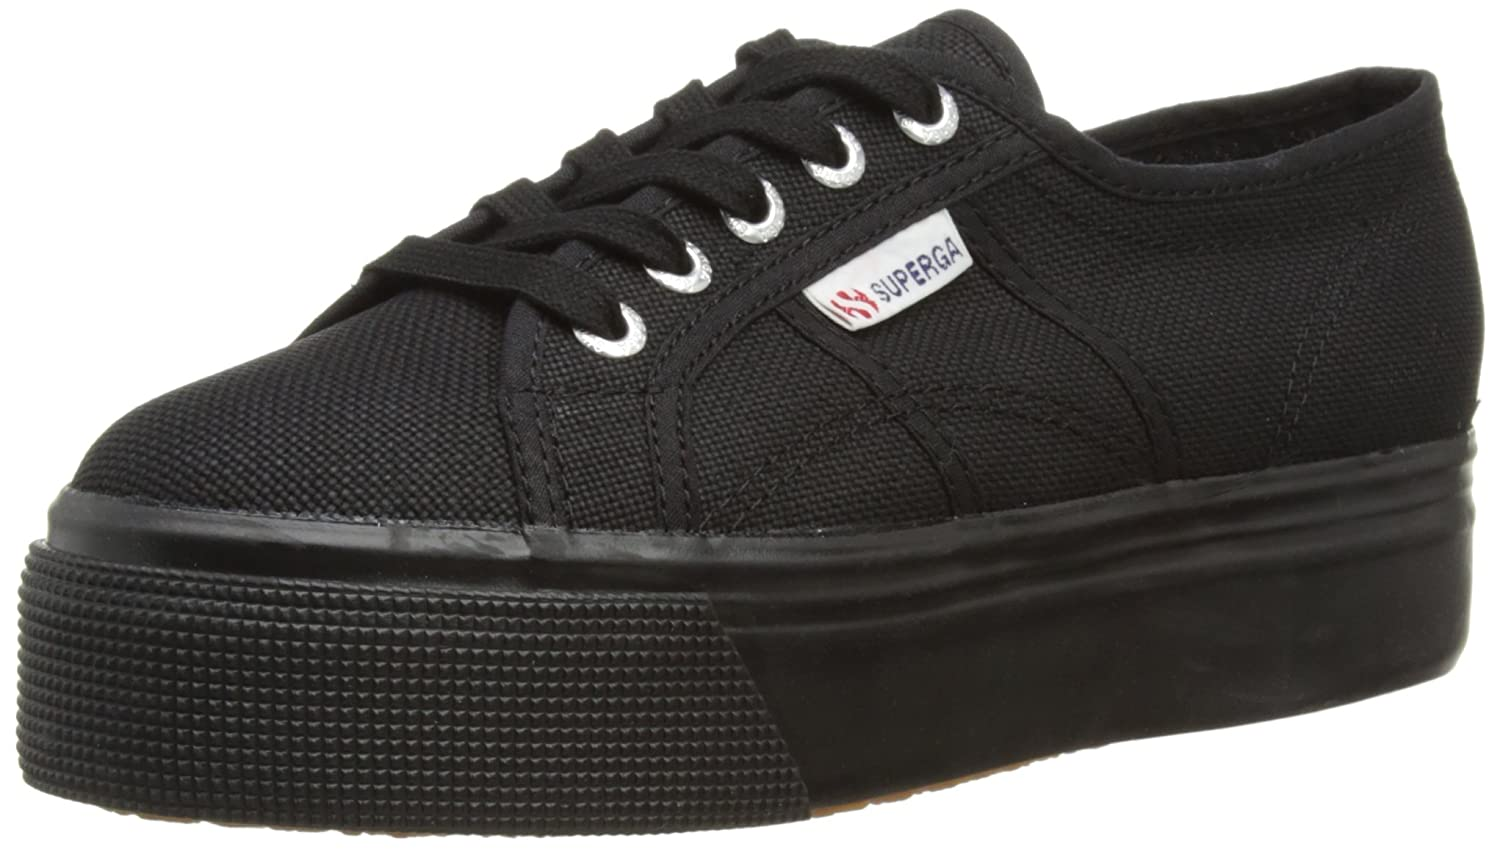 Superga 2790 Linea up and Down Womens Trainers B00JXN8VHE 5 M US|Black